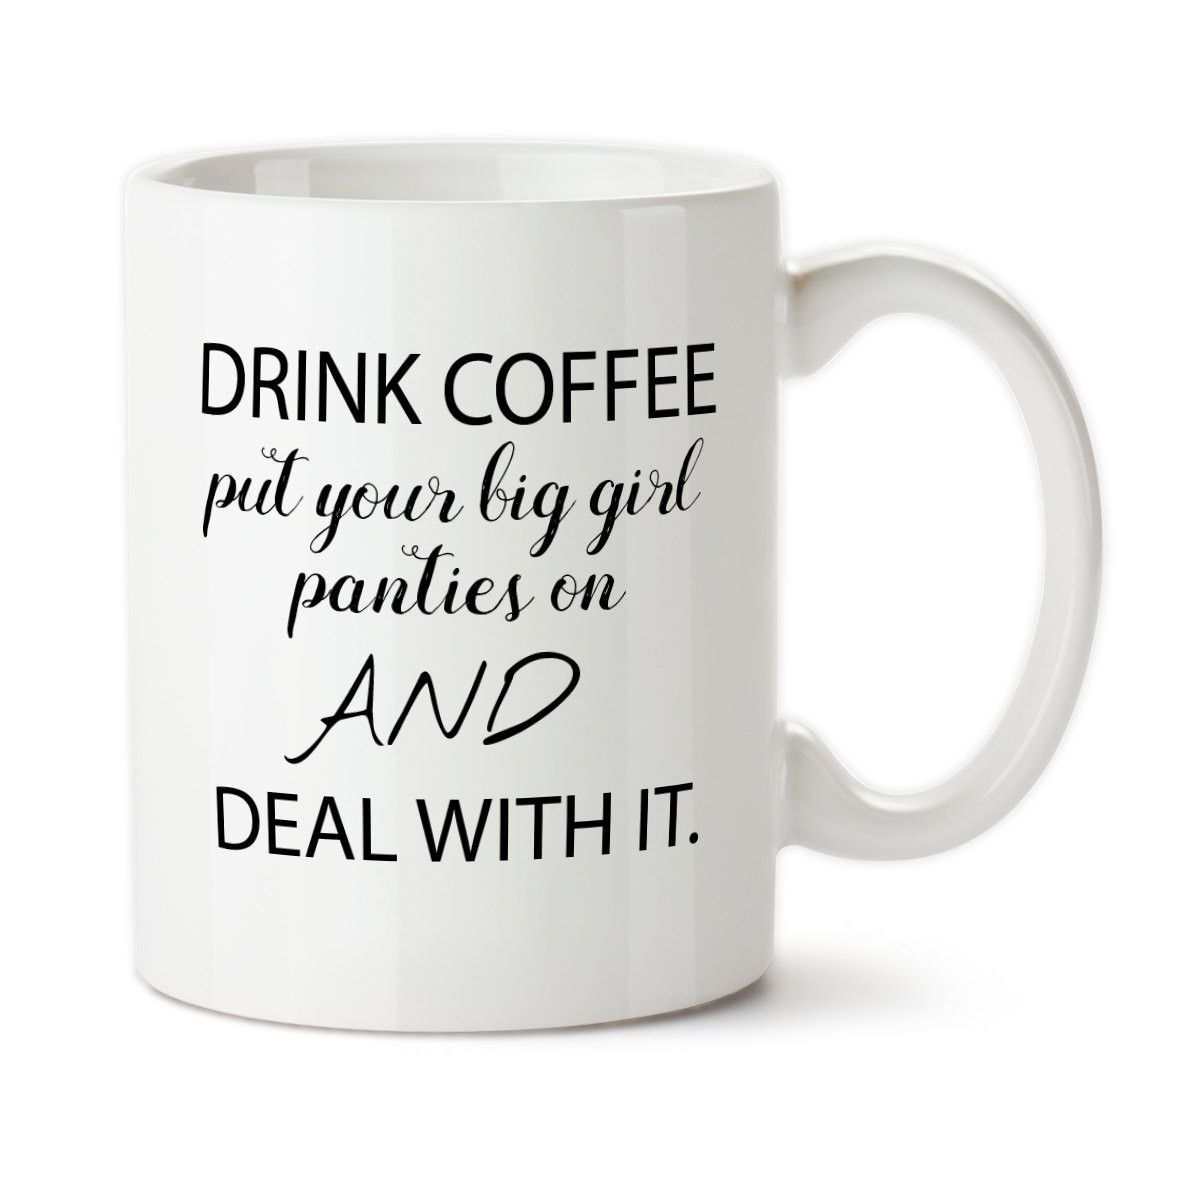 Drink Coffee Put Your Big Girl Panties On And Deal With It, You Got This, Get It Done, Deal With It, Handle It, Motivation, CeramicMug